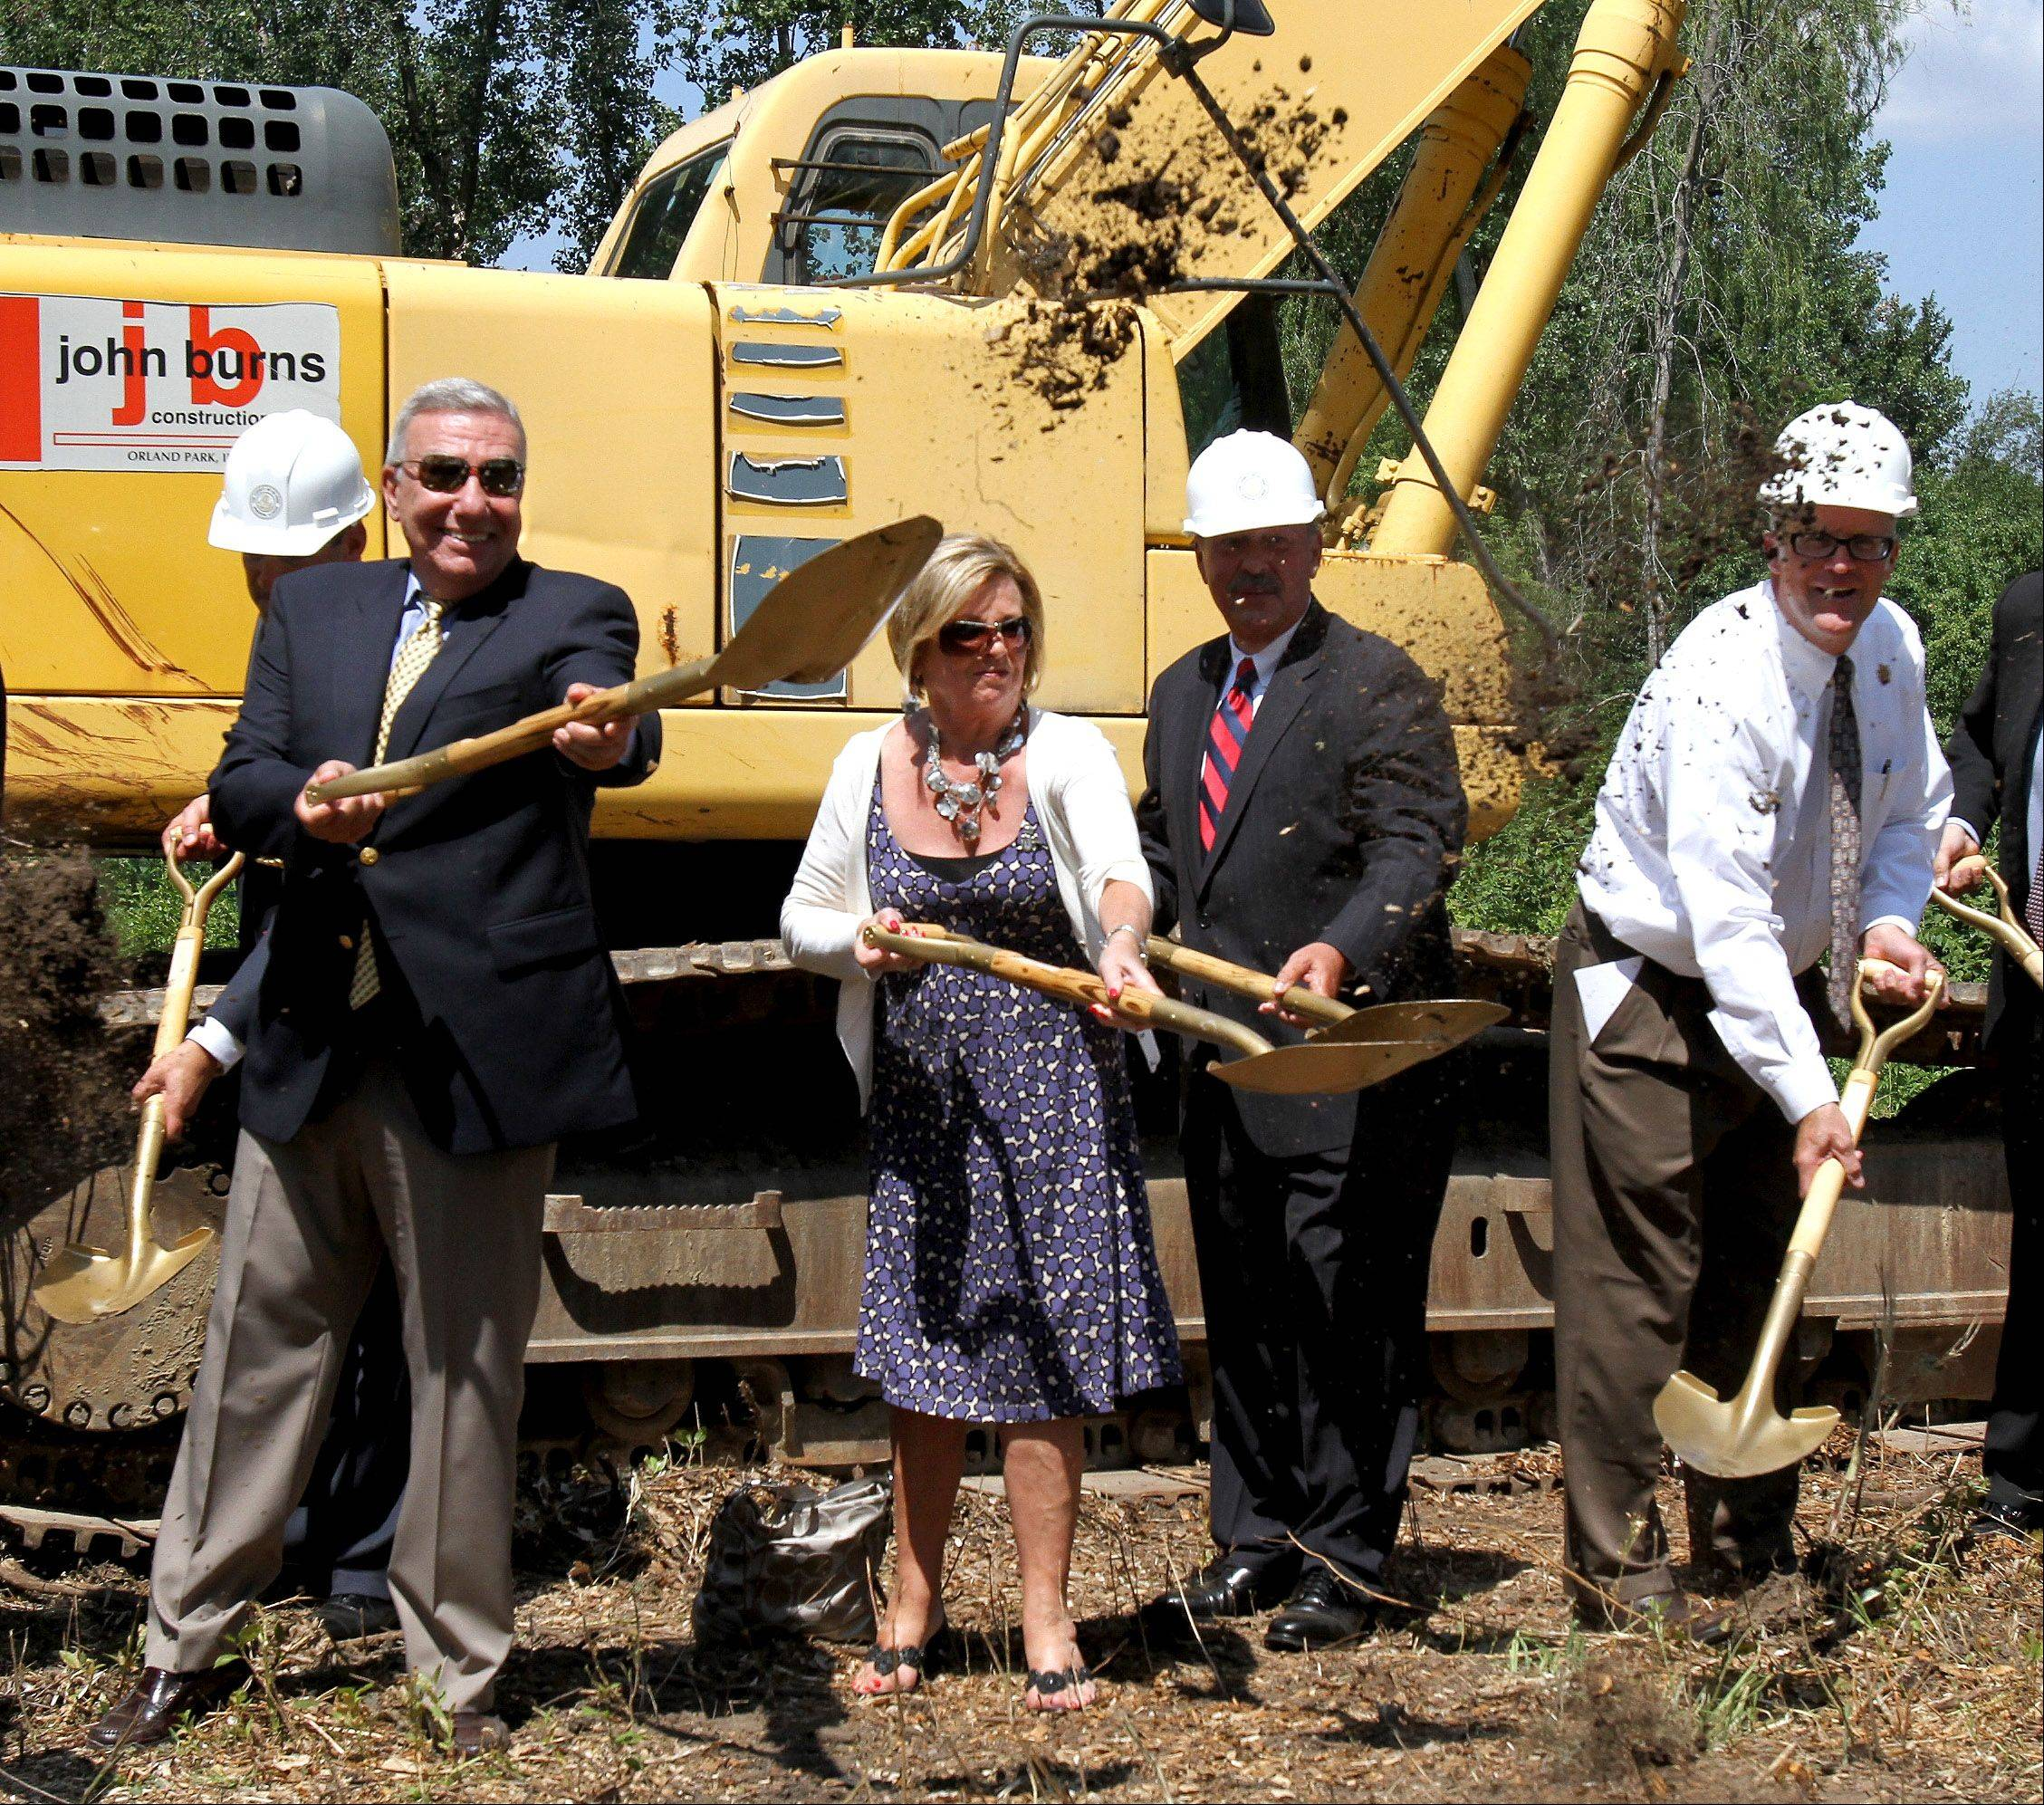 Tom and Pat Nicarico, left, take part in the groundbreaking ceremony for the new Jeanine Nicarico Children's Advocacy Center in Wheaton on Tuesday. On the right is DuPage County Board Chairman Dan Cronin.